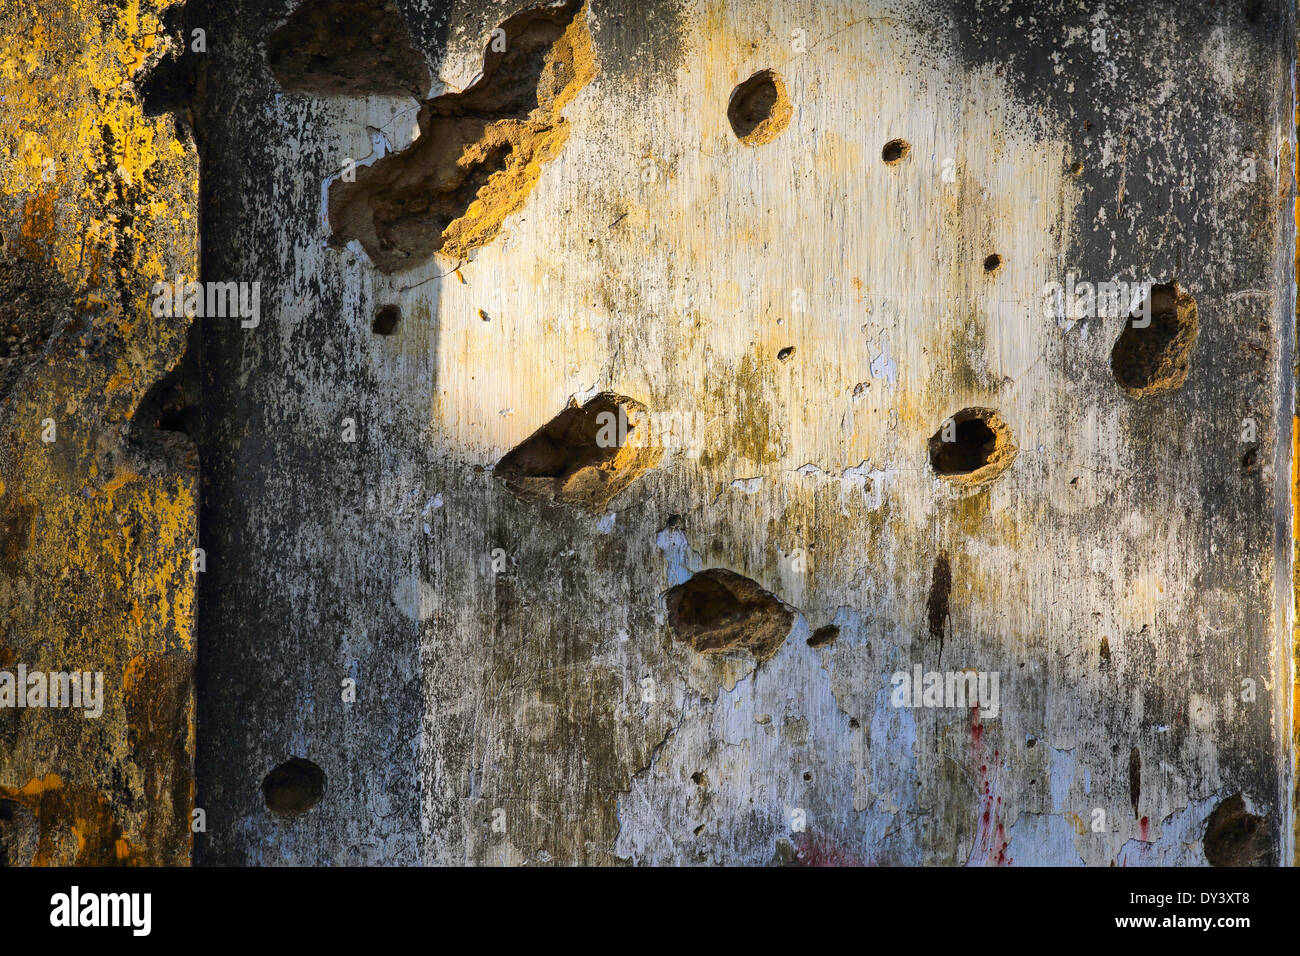 Holes in wall of old building, evidence of the brutal civil war between the Tamil Tigers and the Sri Lankan government - Stock Image